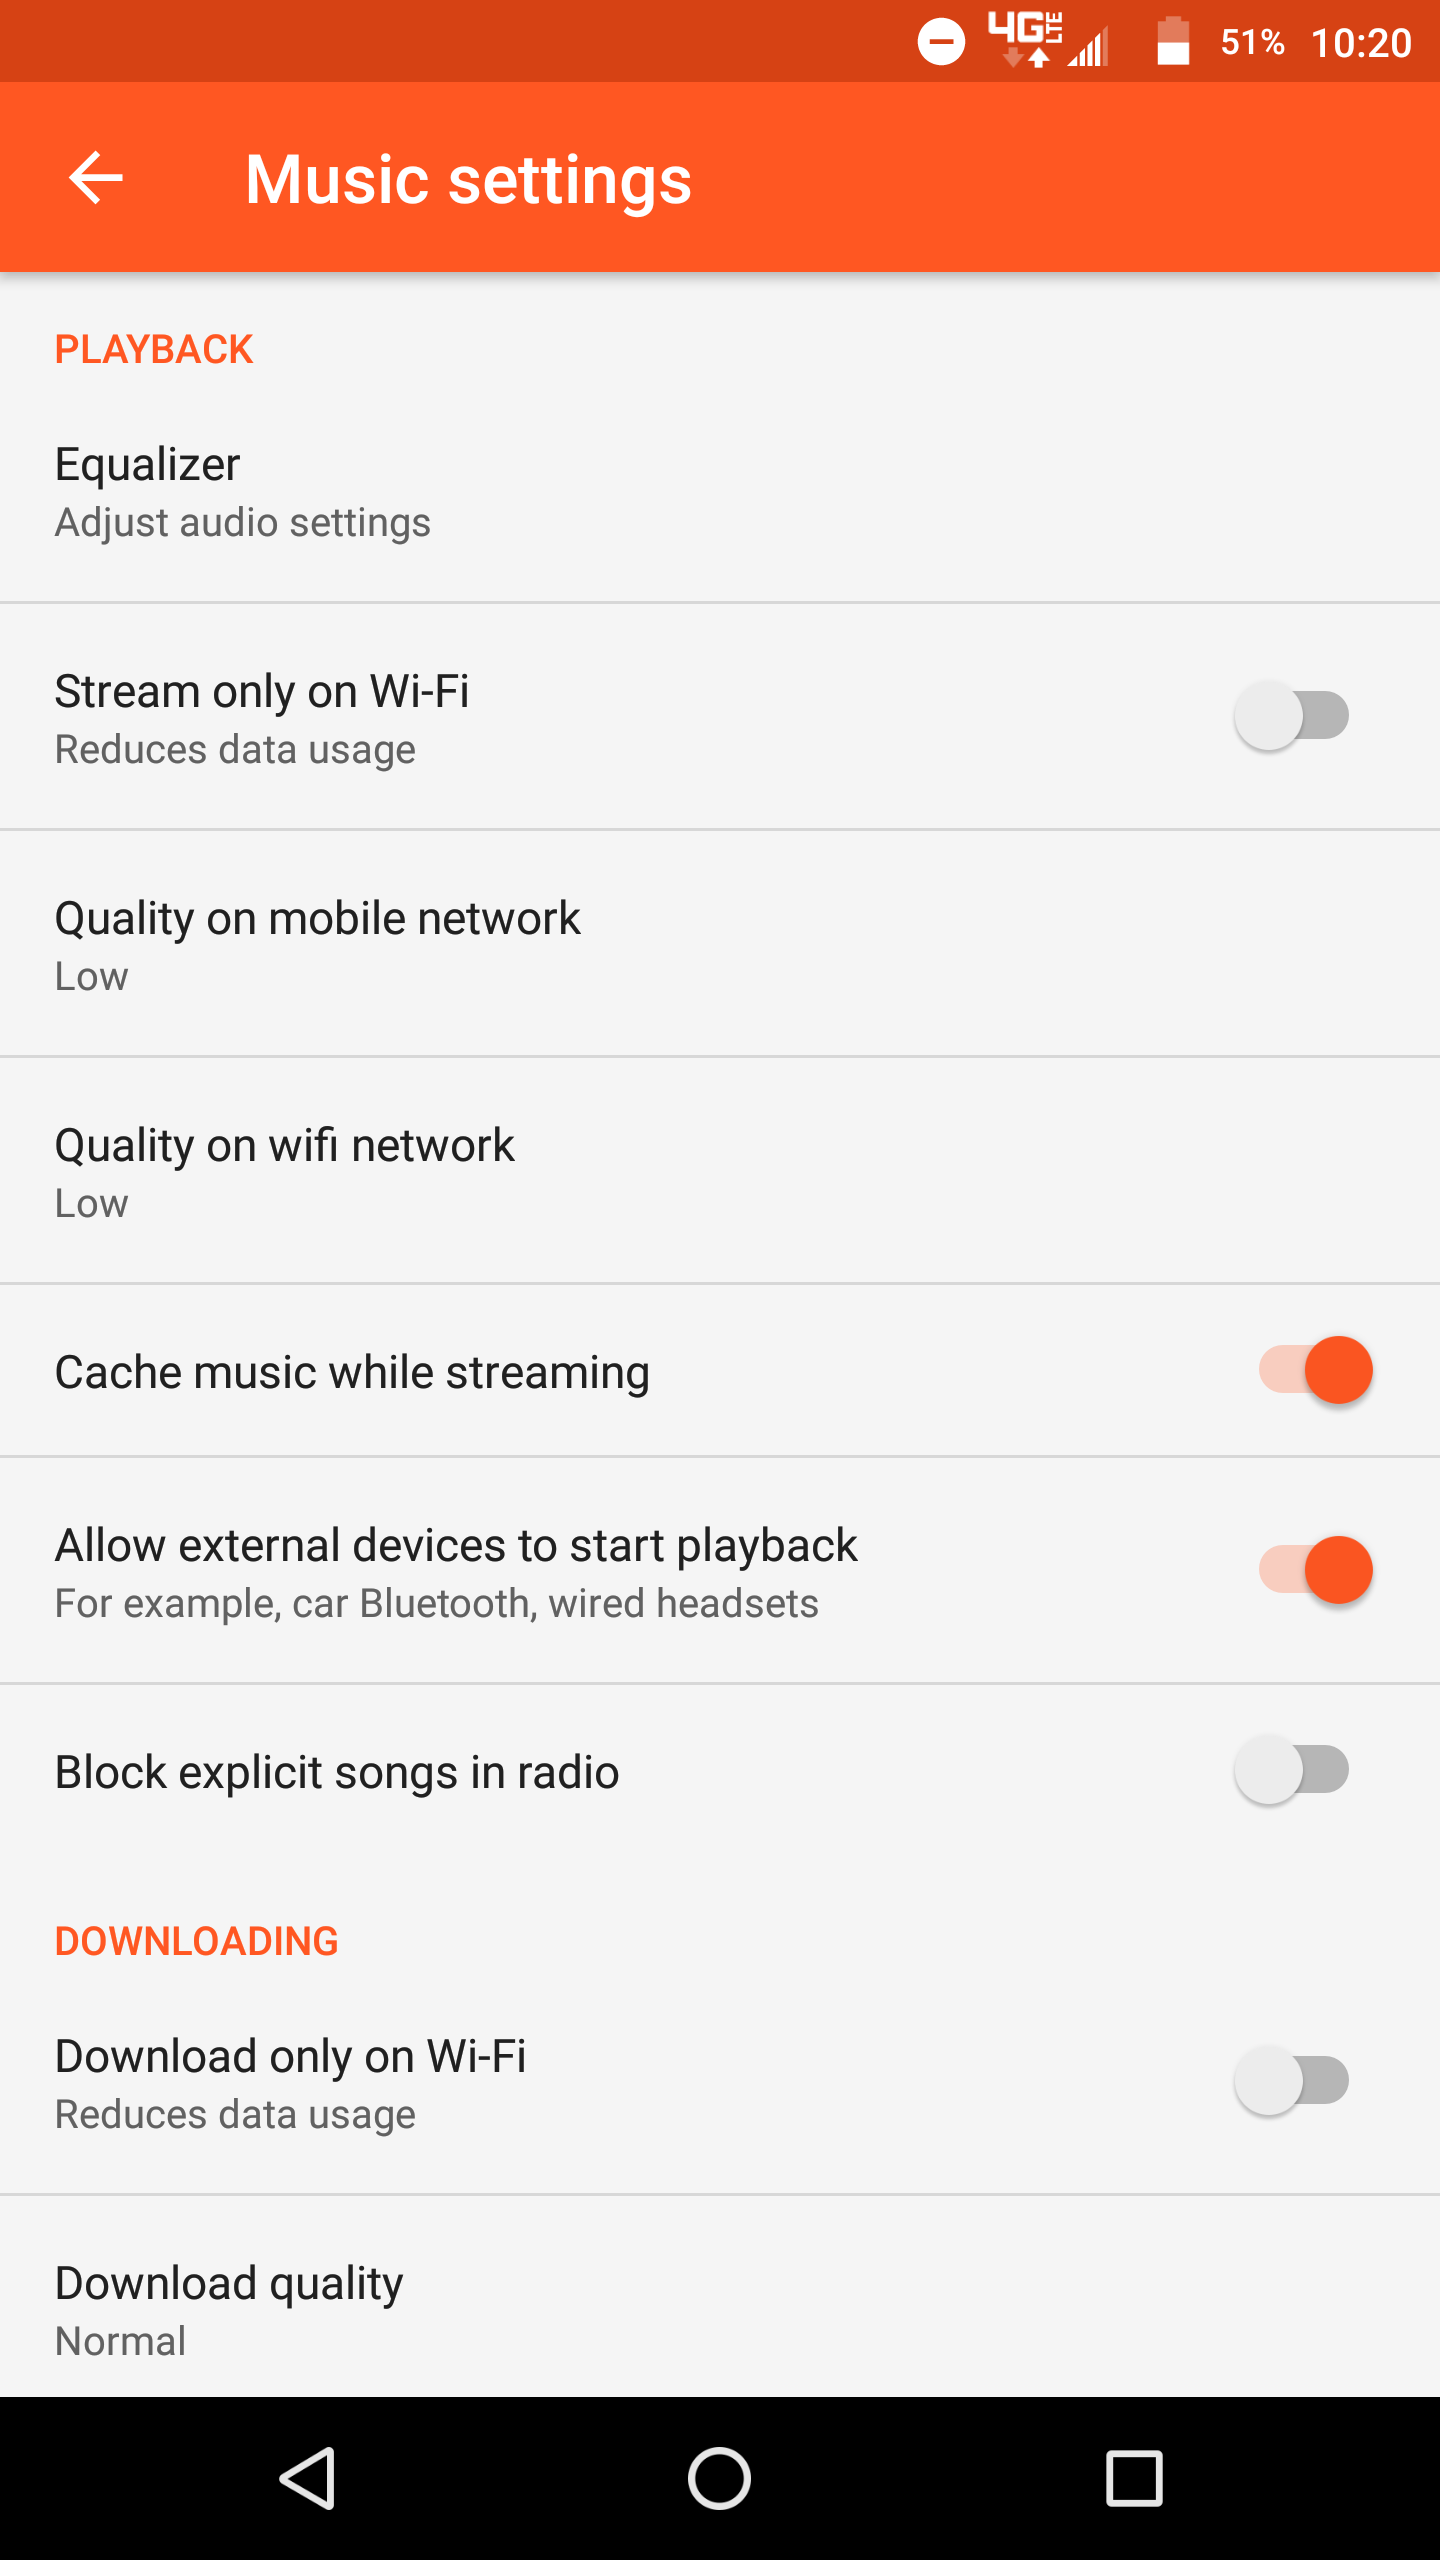 YouTube Music 2 21 gains Play Music's audio quality settings